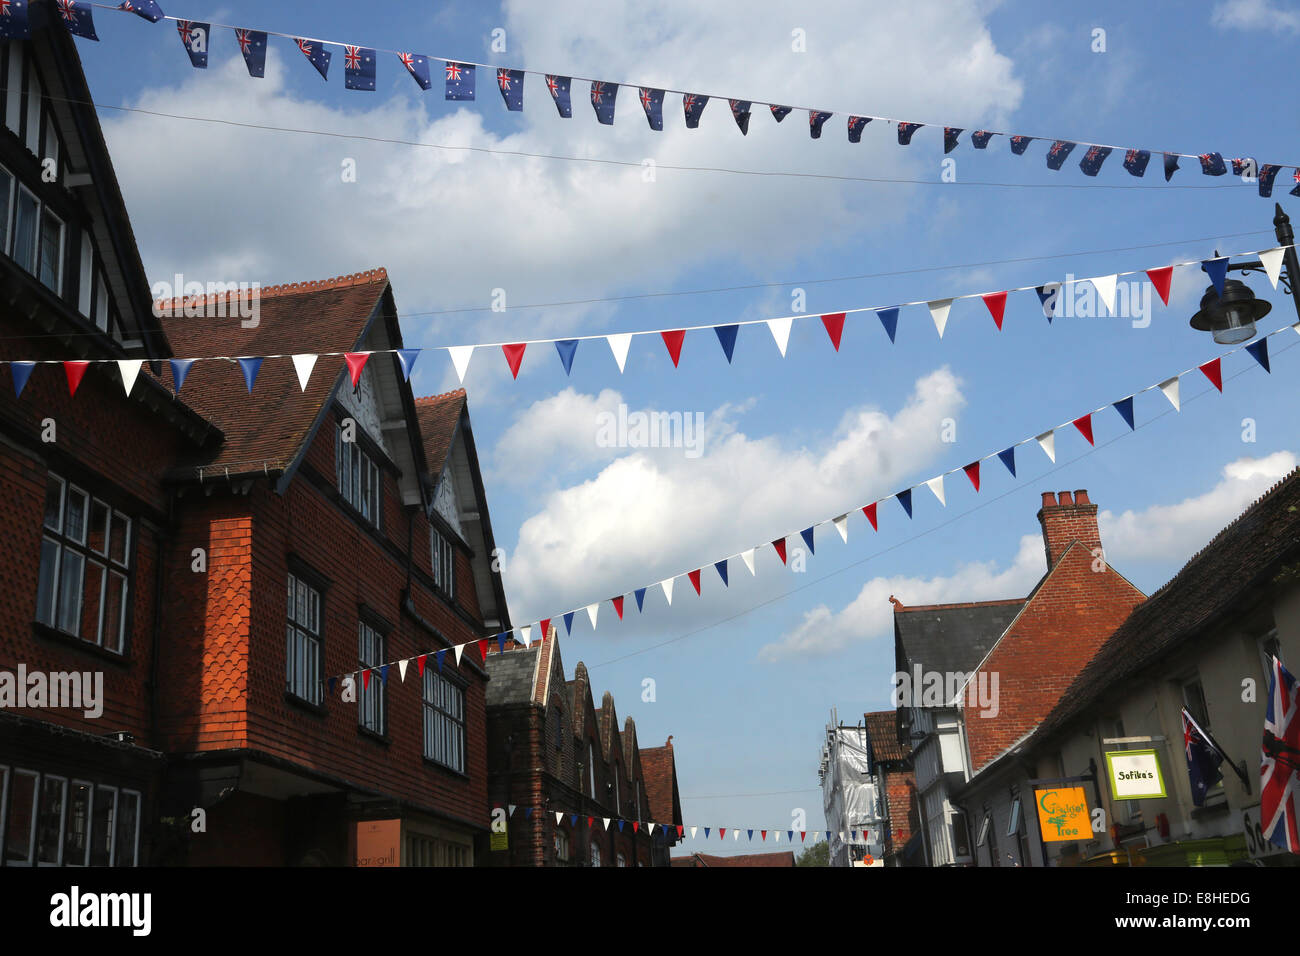 Bunting Above Shops In Lyndhurst High Street New Forest Hampshire England - Stock Image